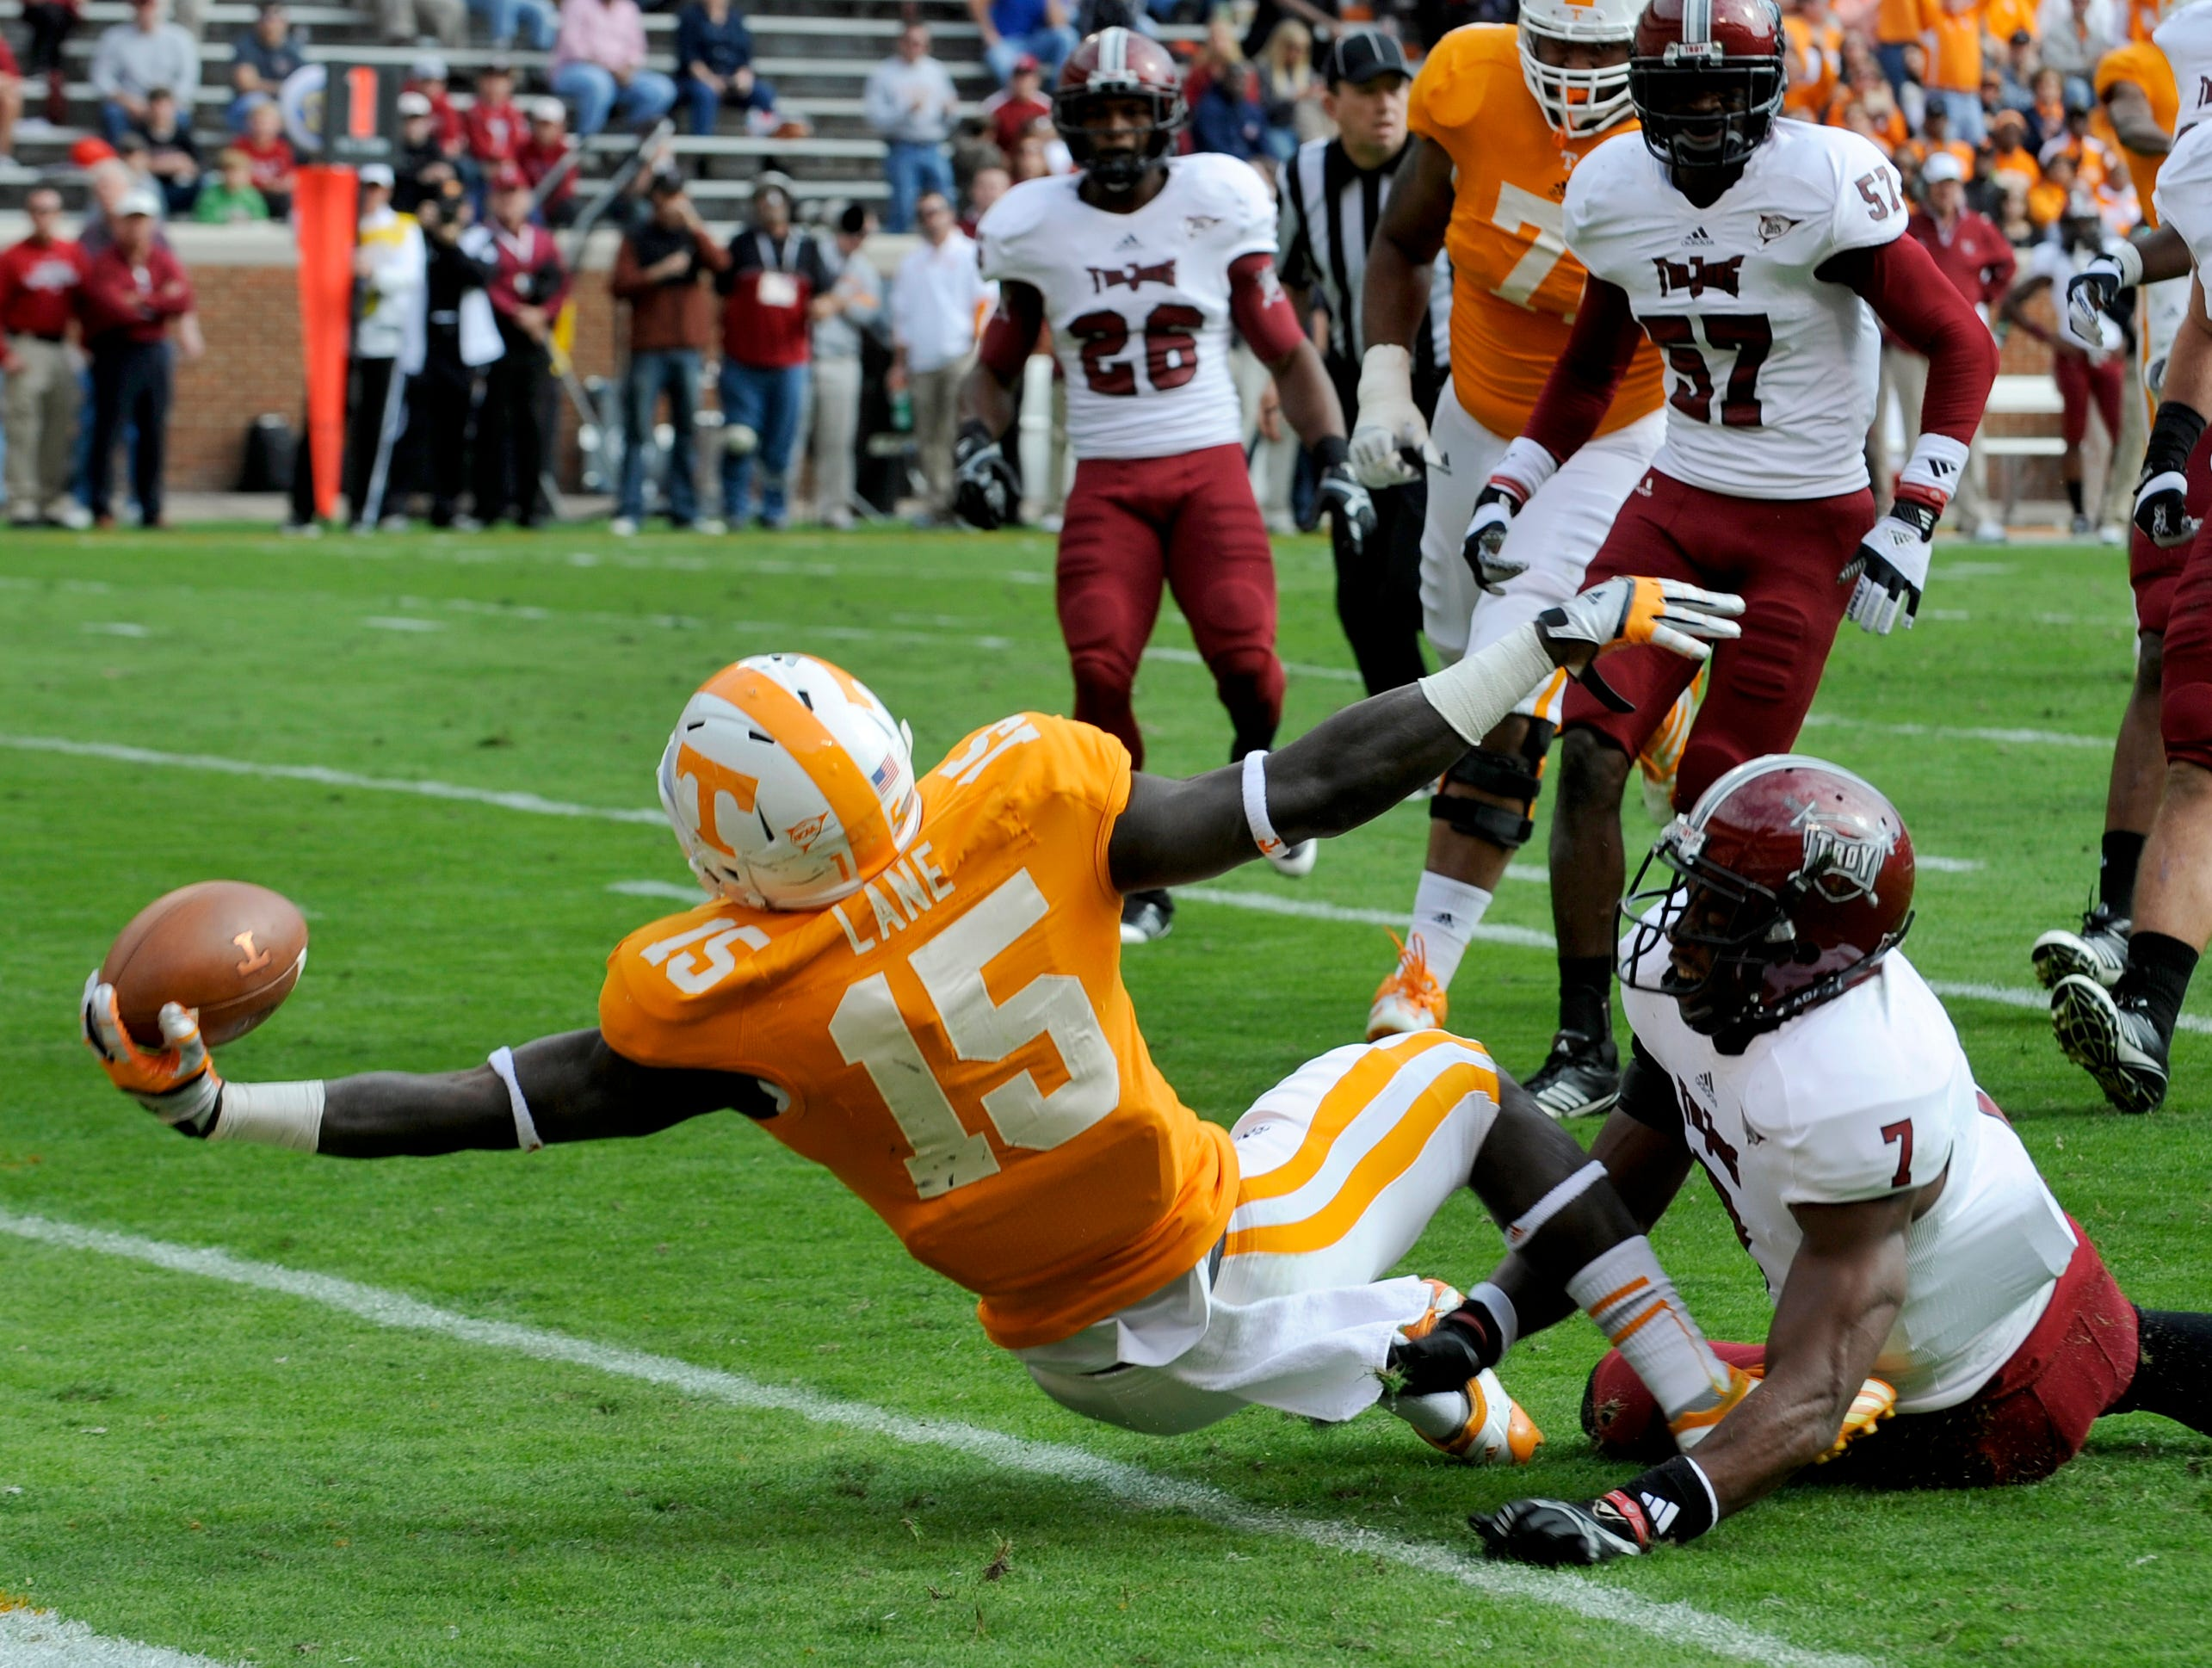 Tennessee running back Marlin Lane (15) pulls away from Troy's Chris Pickett to score a touchdown during the first half of their game Saturday, Nov. 3, 2012 in Neyland Stadium.